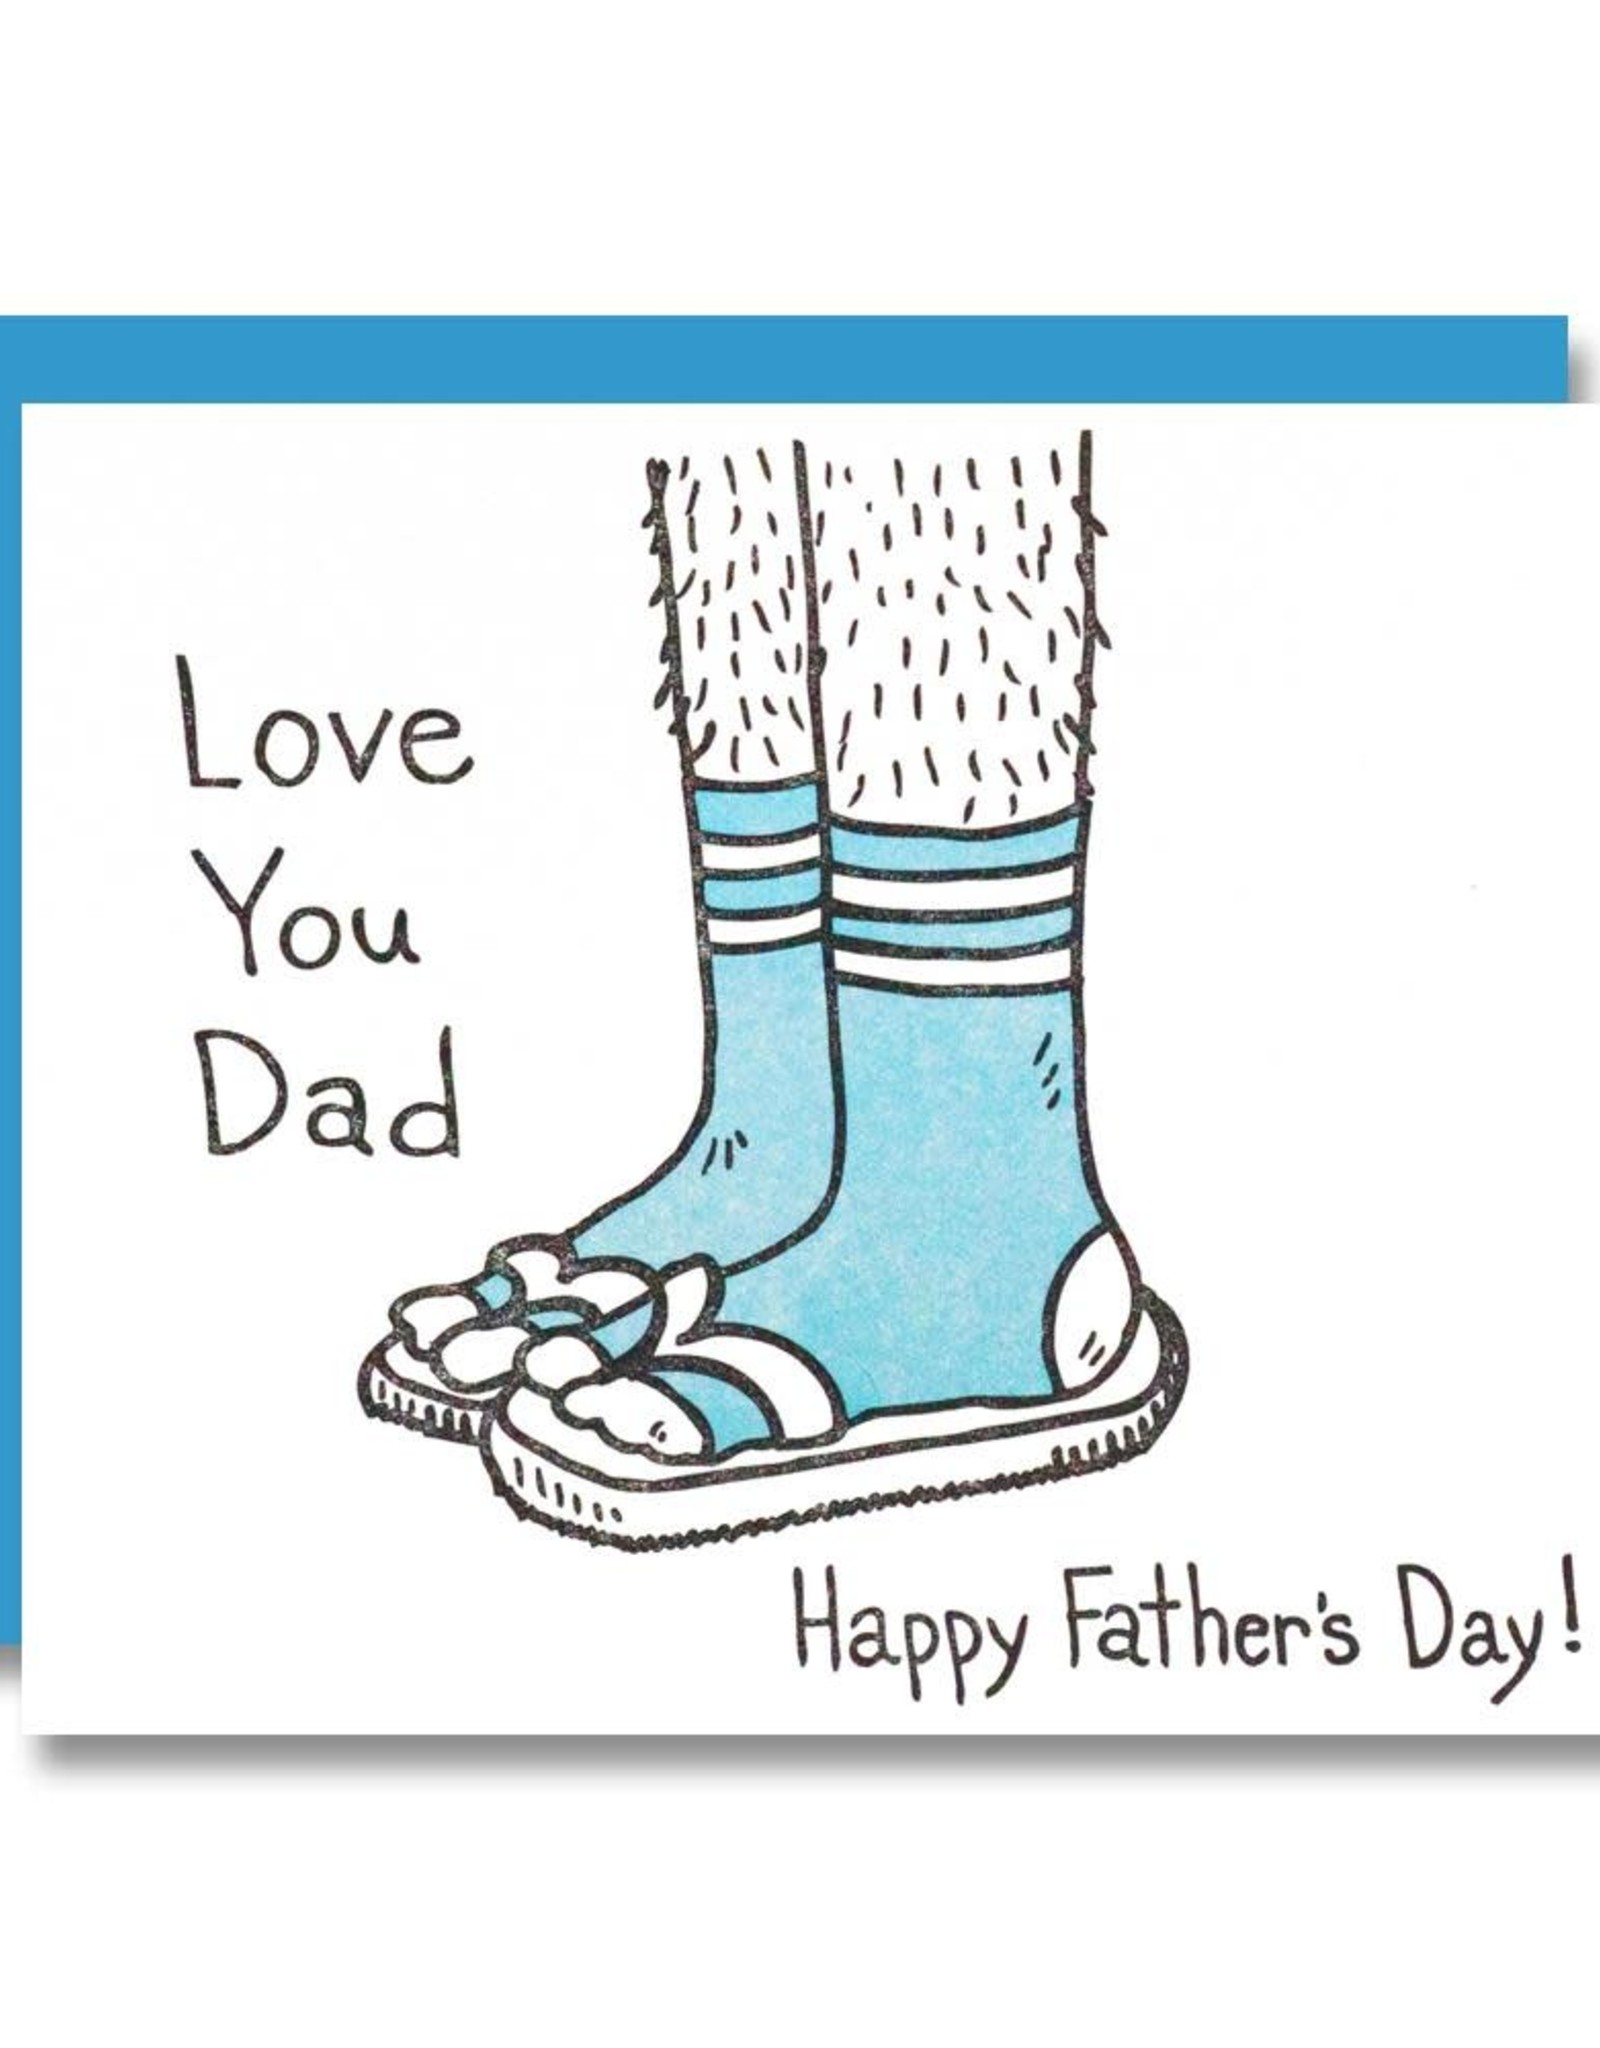 Love You Dad Happy Father's Day Greeting Card - Papa Llama